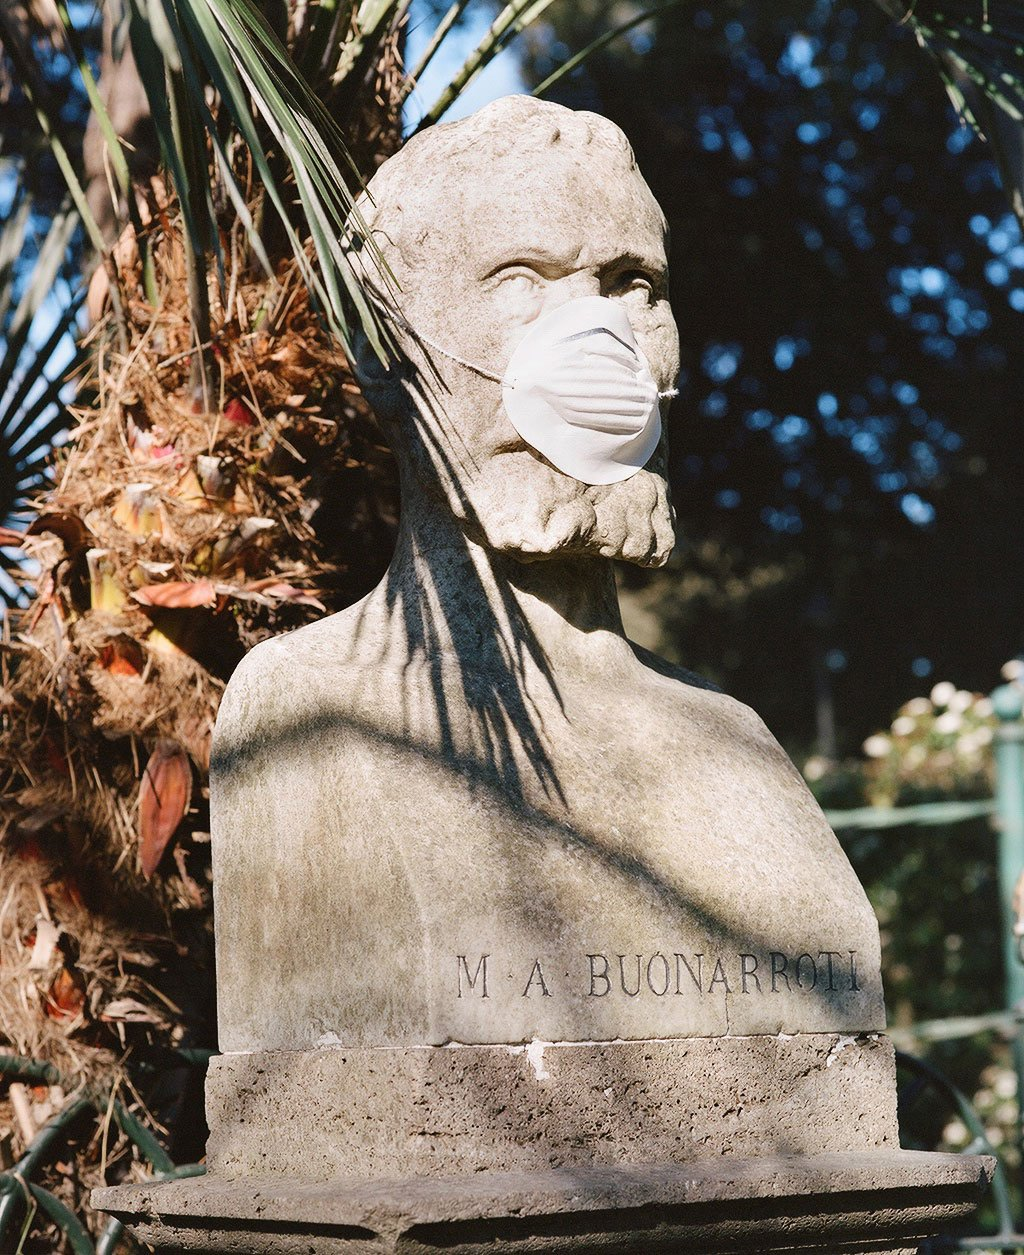 Bust of architect, sculptor and painter Michelangelo Buonarroti (1475-1564) at Villa Borghese gardens, Rome. Photo © Federico Pestilli.